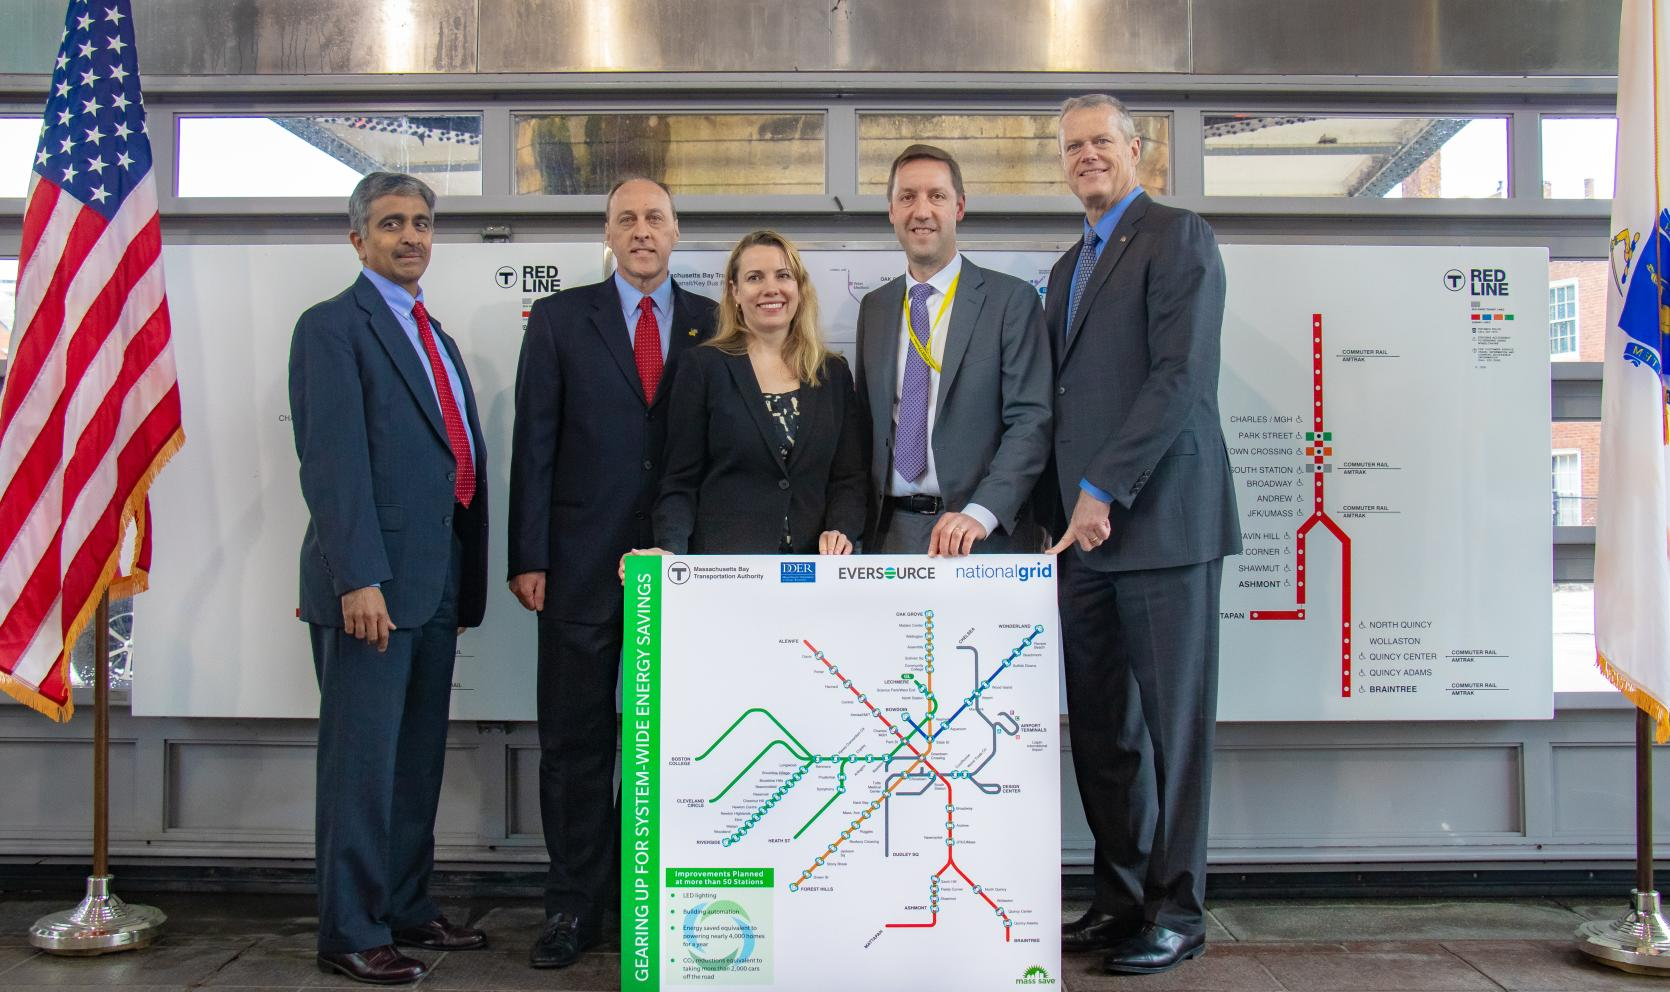 Baker-Polito Administration Announces $40 Million Energy Efficiency Partnership with MBTA, Eversource and National Grid